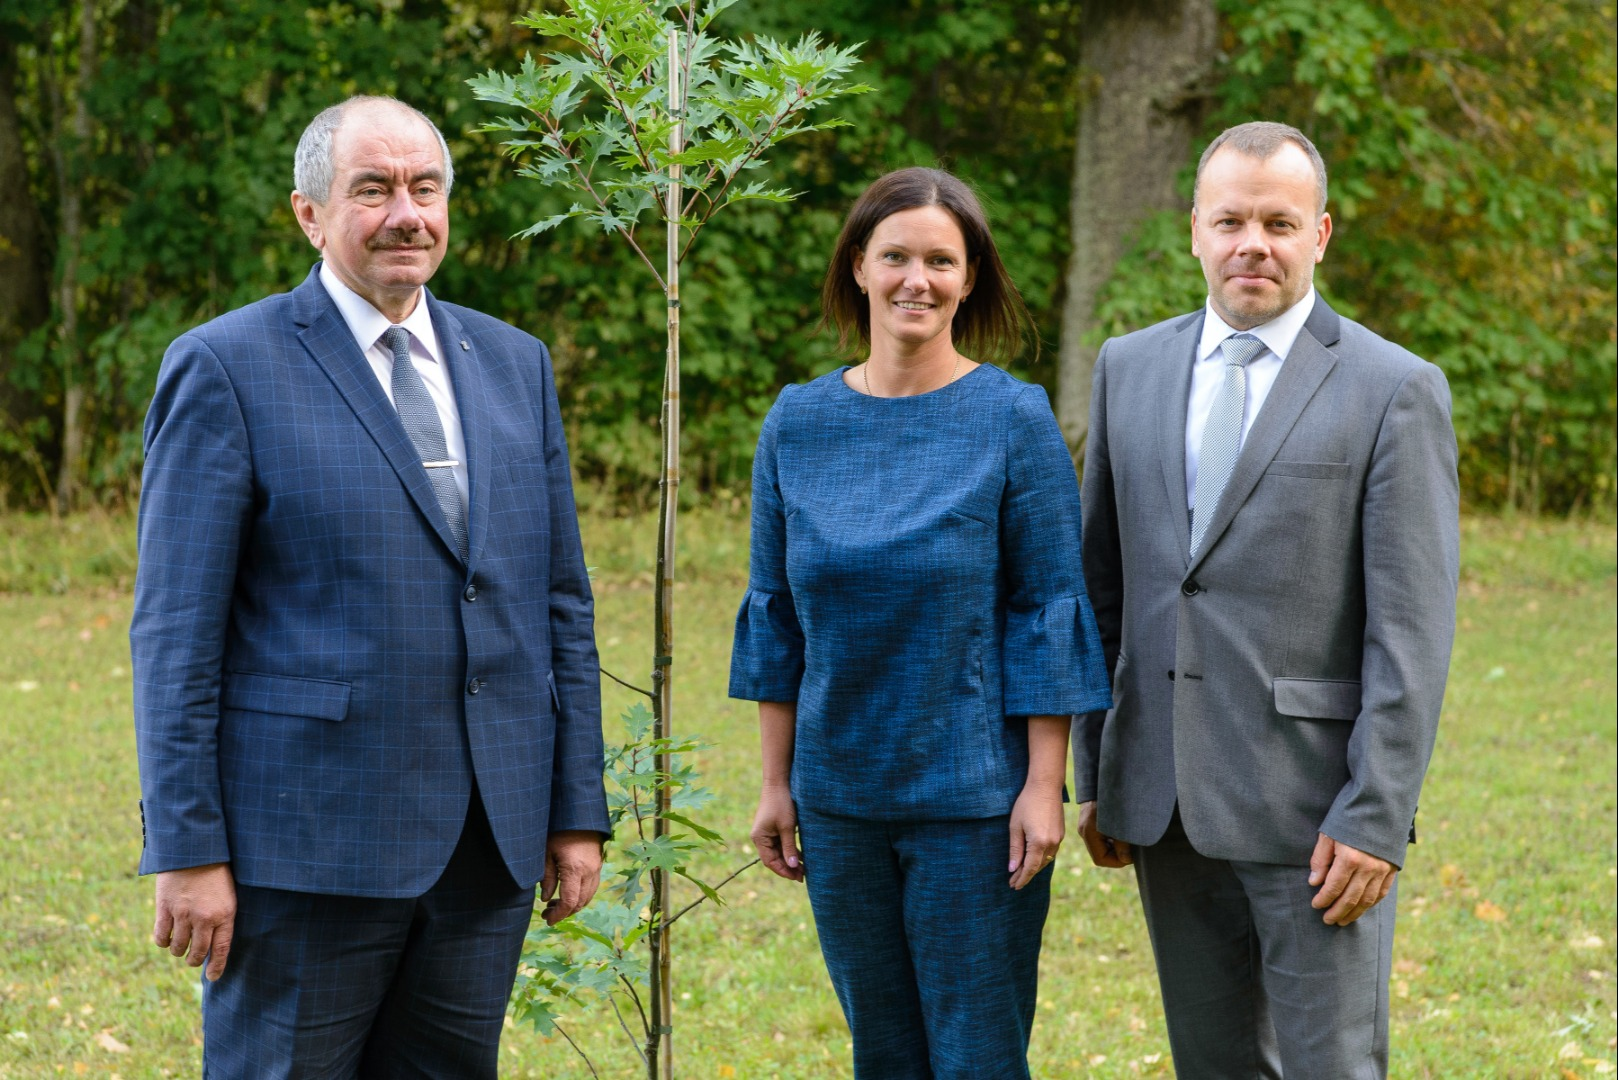 14.09.2018. Priekuli Municipality invited the Supreme Court to take part in the events dedicated to their townsman – Senator Karlis Ozolins. In memory of Karlis Ozolins, an oak tree near his native home was planted by the Chair of Priekuli County Council Elina Stapulone, Chief Justice of the Supreme Court Ivars Bickovics and Chair of Vidzeme District Court Janis Grinbergs.